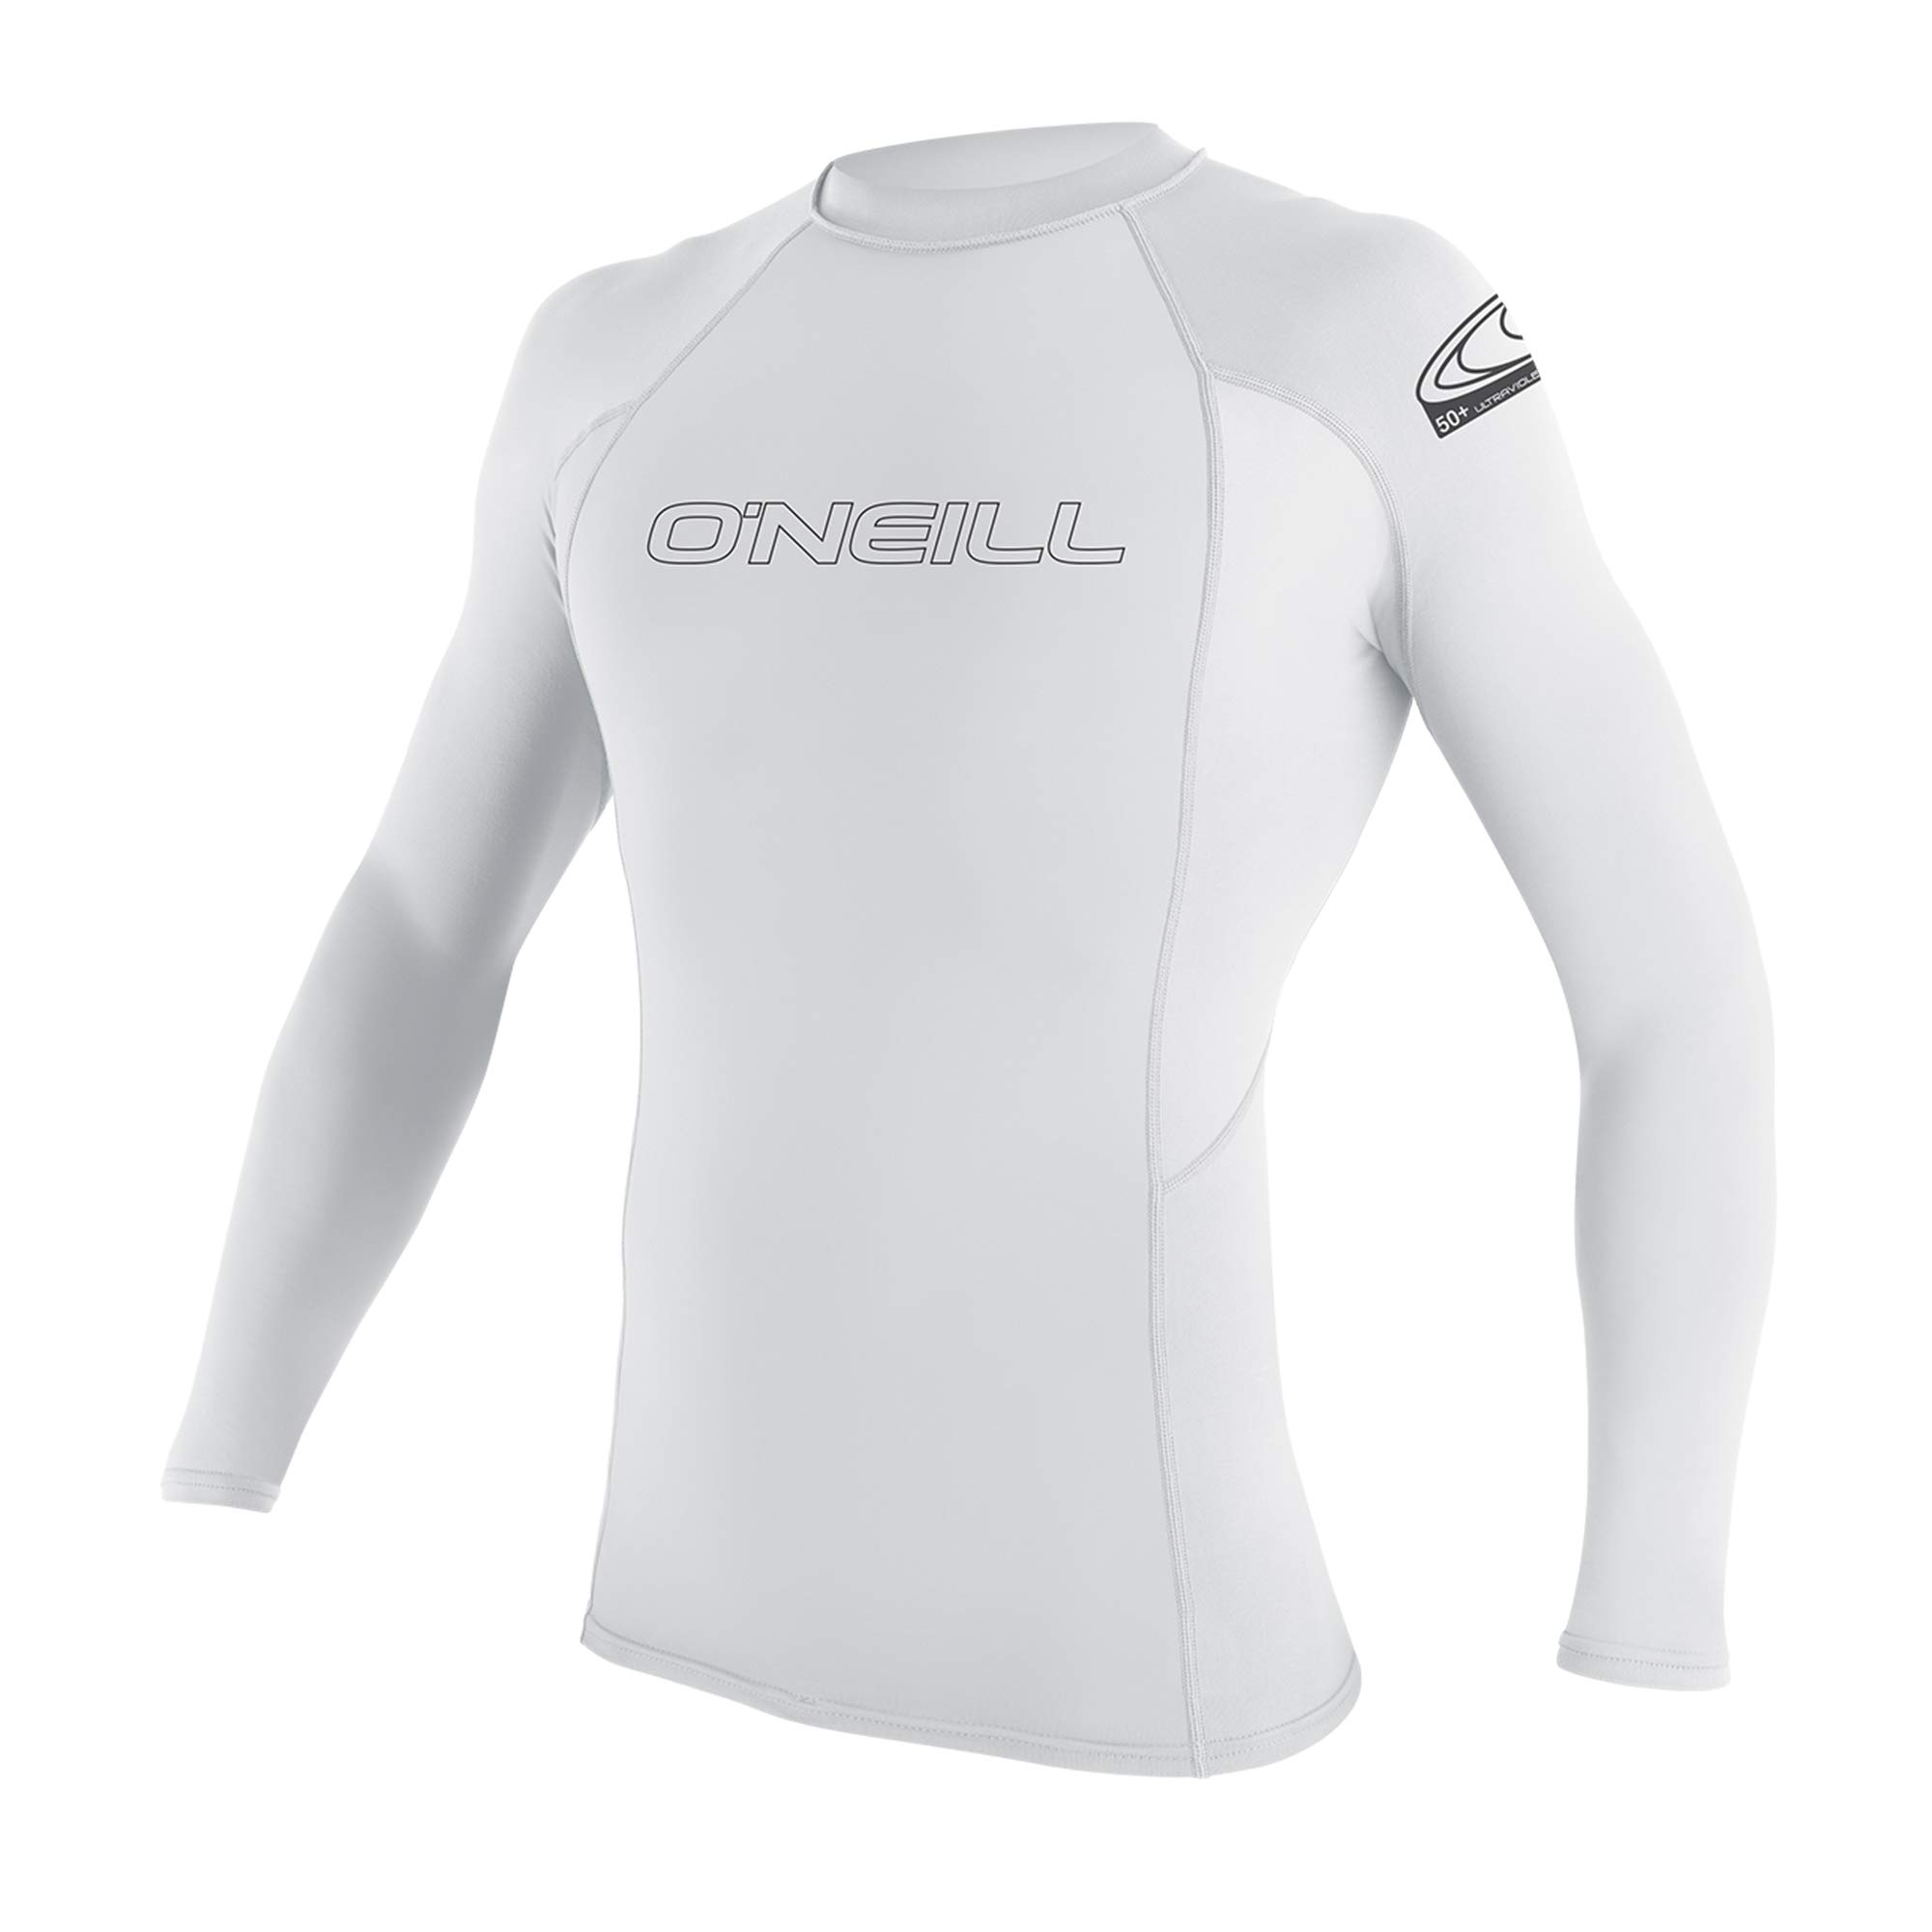 O'Neill Youth Basic Skins UPF 50+ Long Sleeve Rash Guard, White, 12 by O'Neill Wetsuits